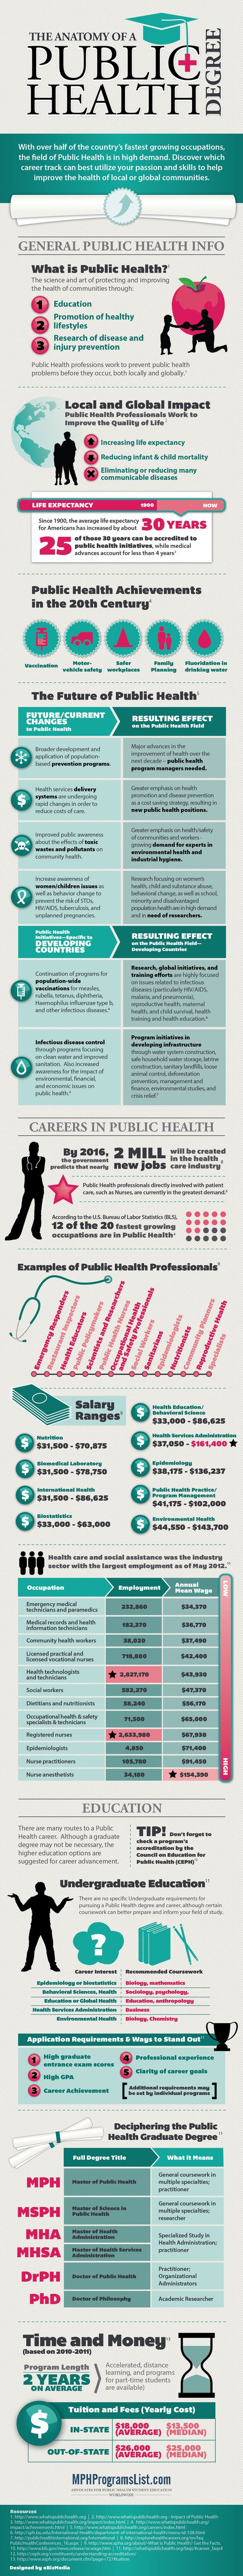 Public health degree. If only I could show this to people when they ask what I'm studying.